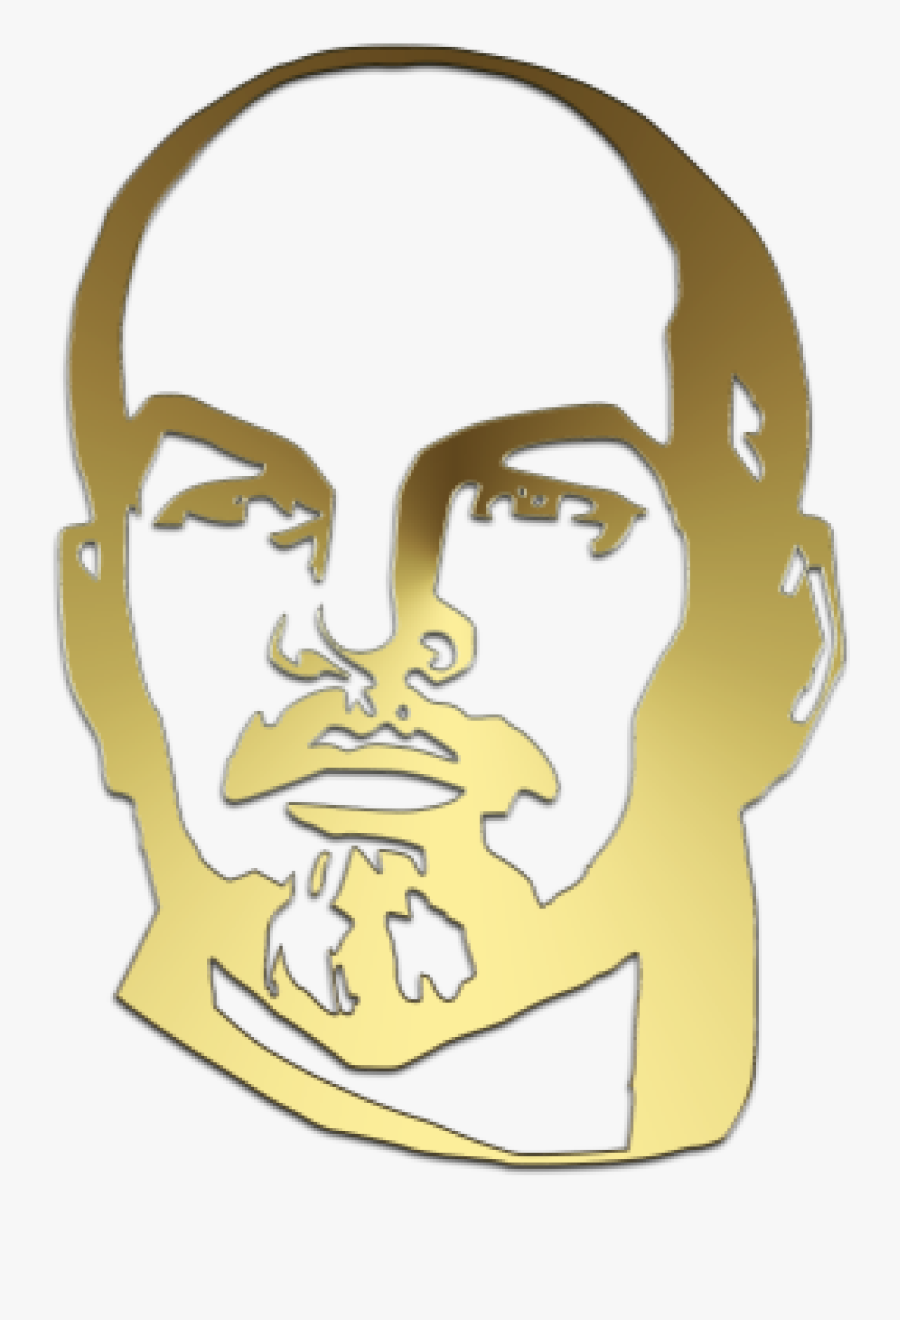 Kim Jong-un Png Image - Black And White Drawings Of Celebrities, Transparent Clipart